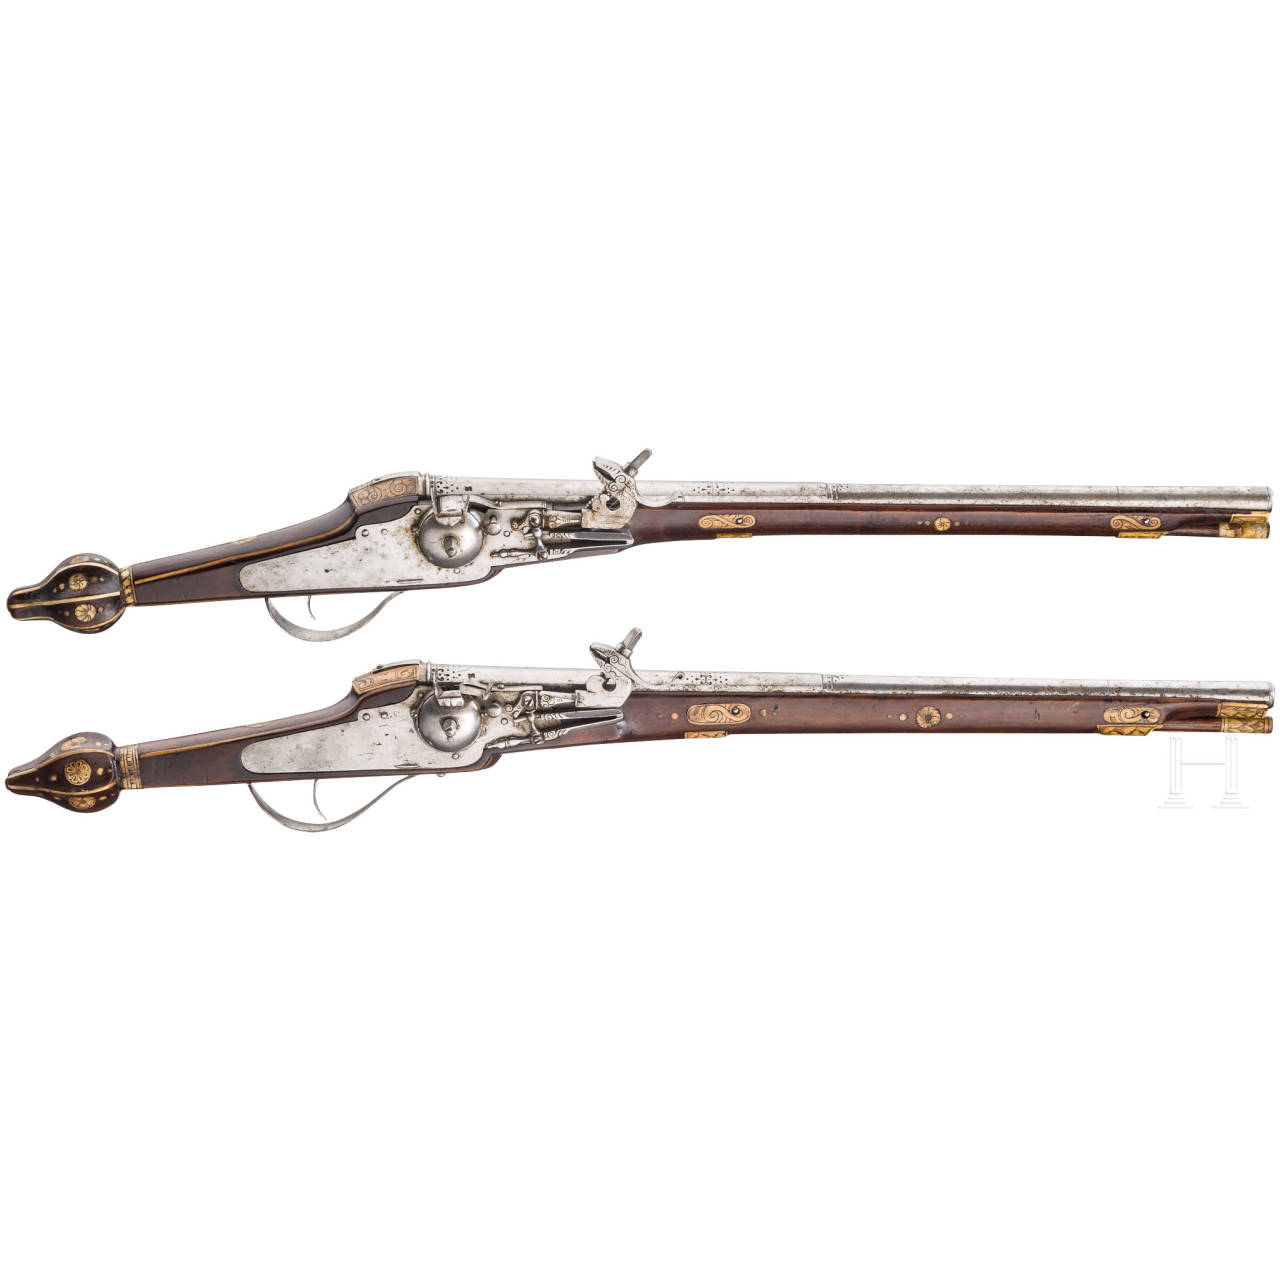 A pair of long wheellock pistols (3rd model) of the trabant guard of Christian II of Saxony, Hans Stockmann, Dresden, circa 1610